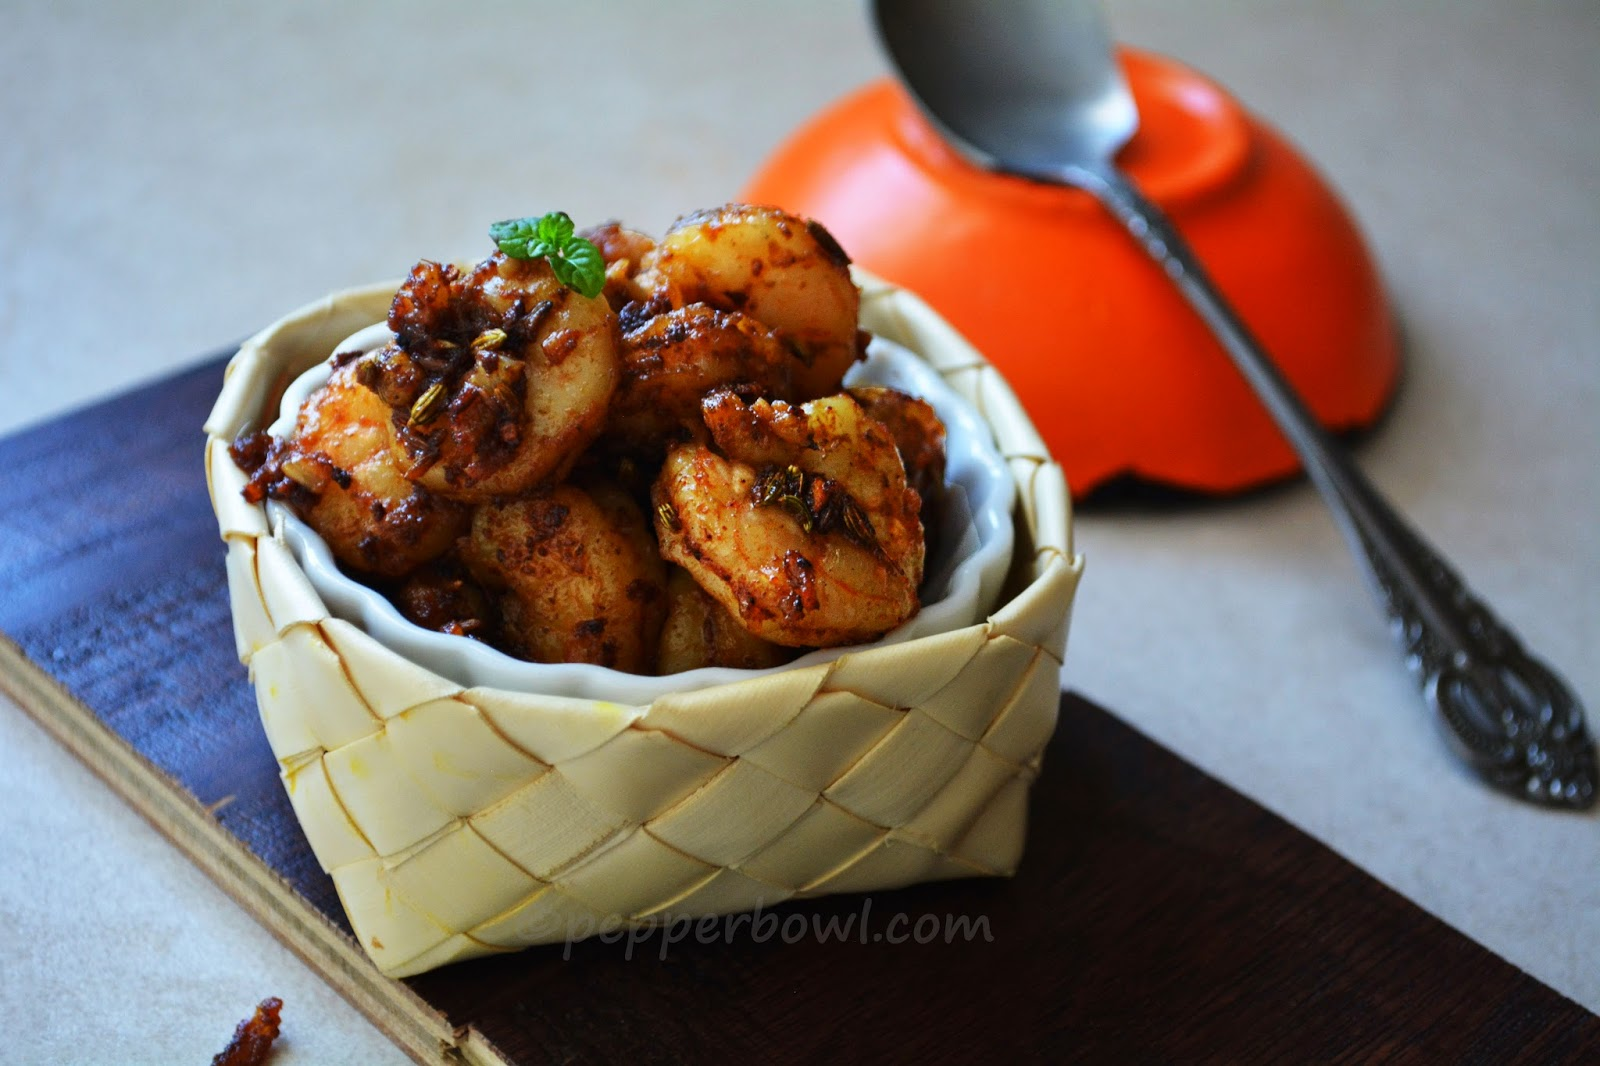 Prawn Stir Fry with Indian spices